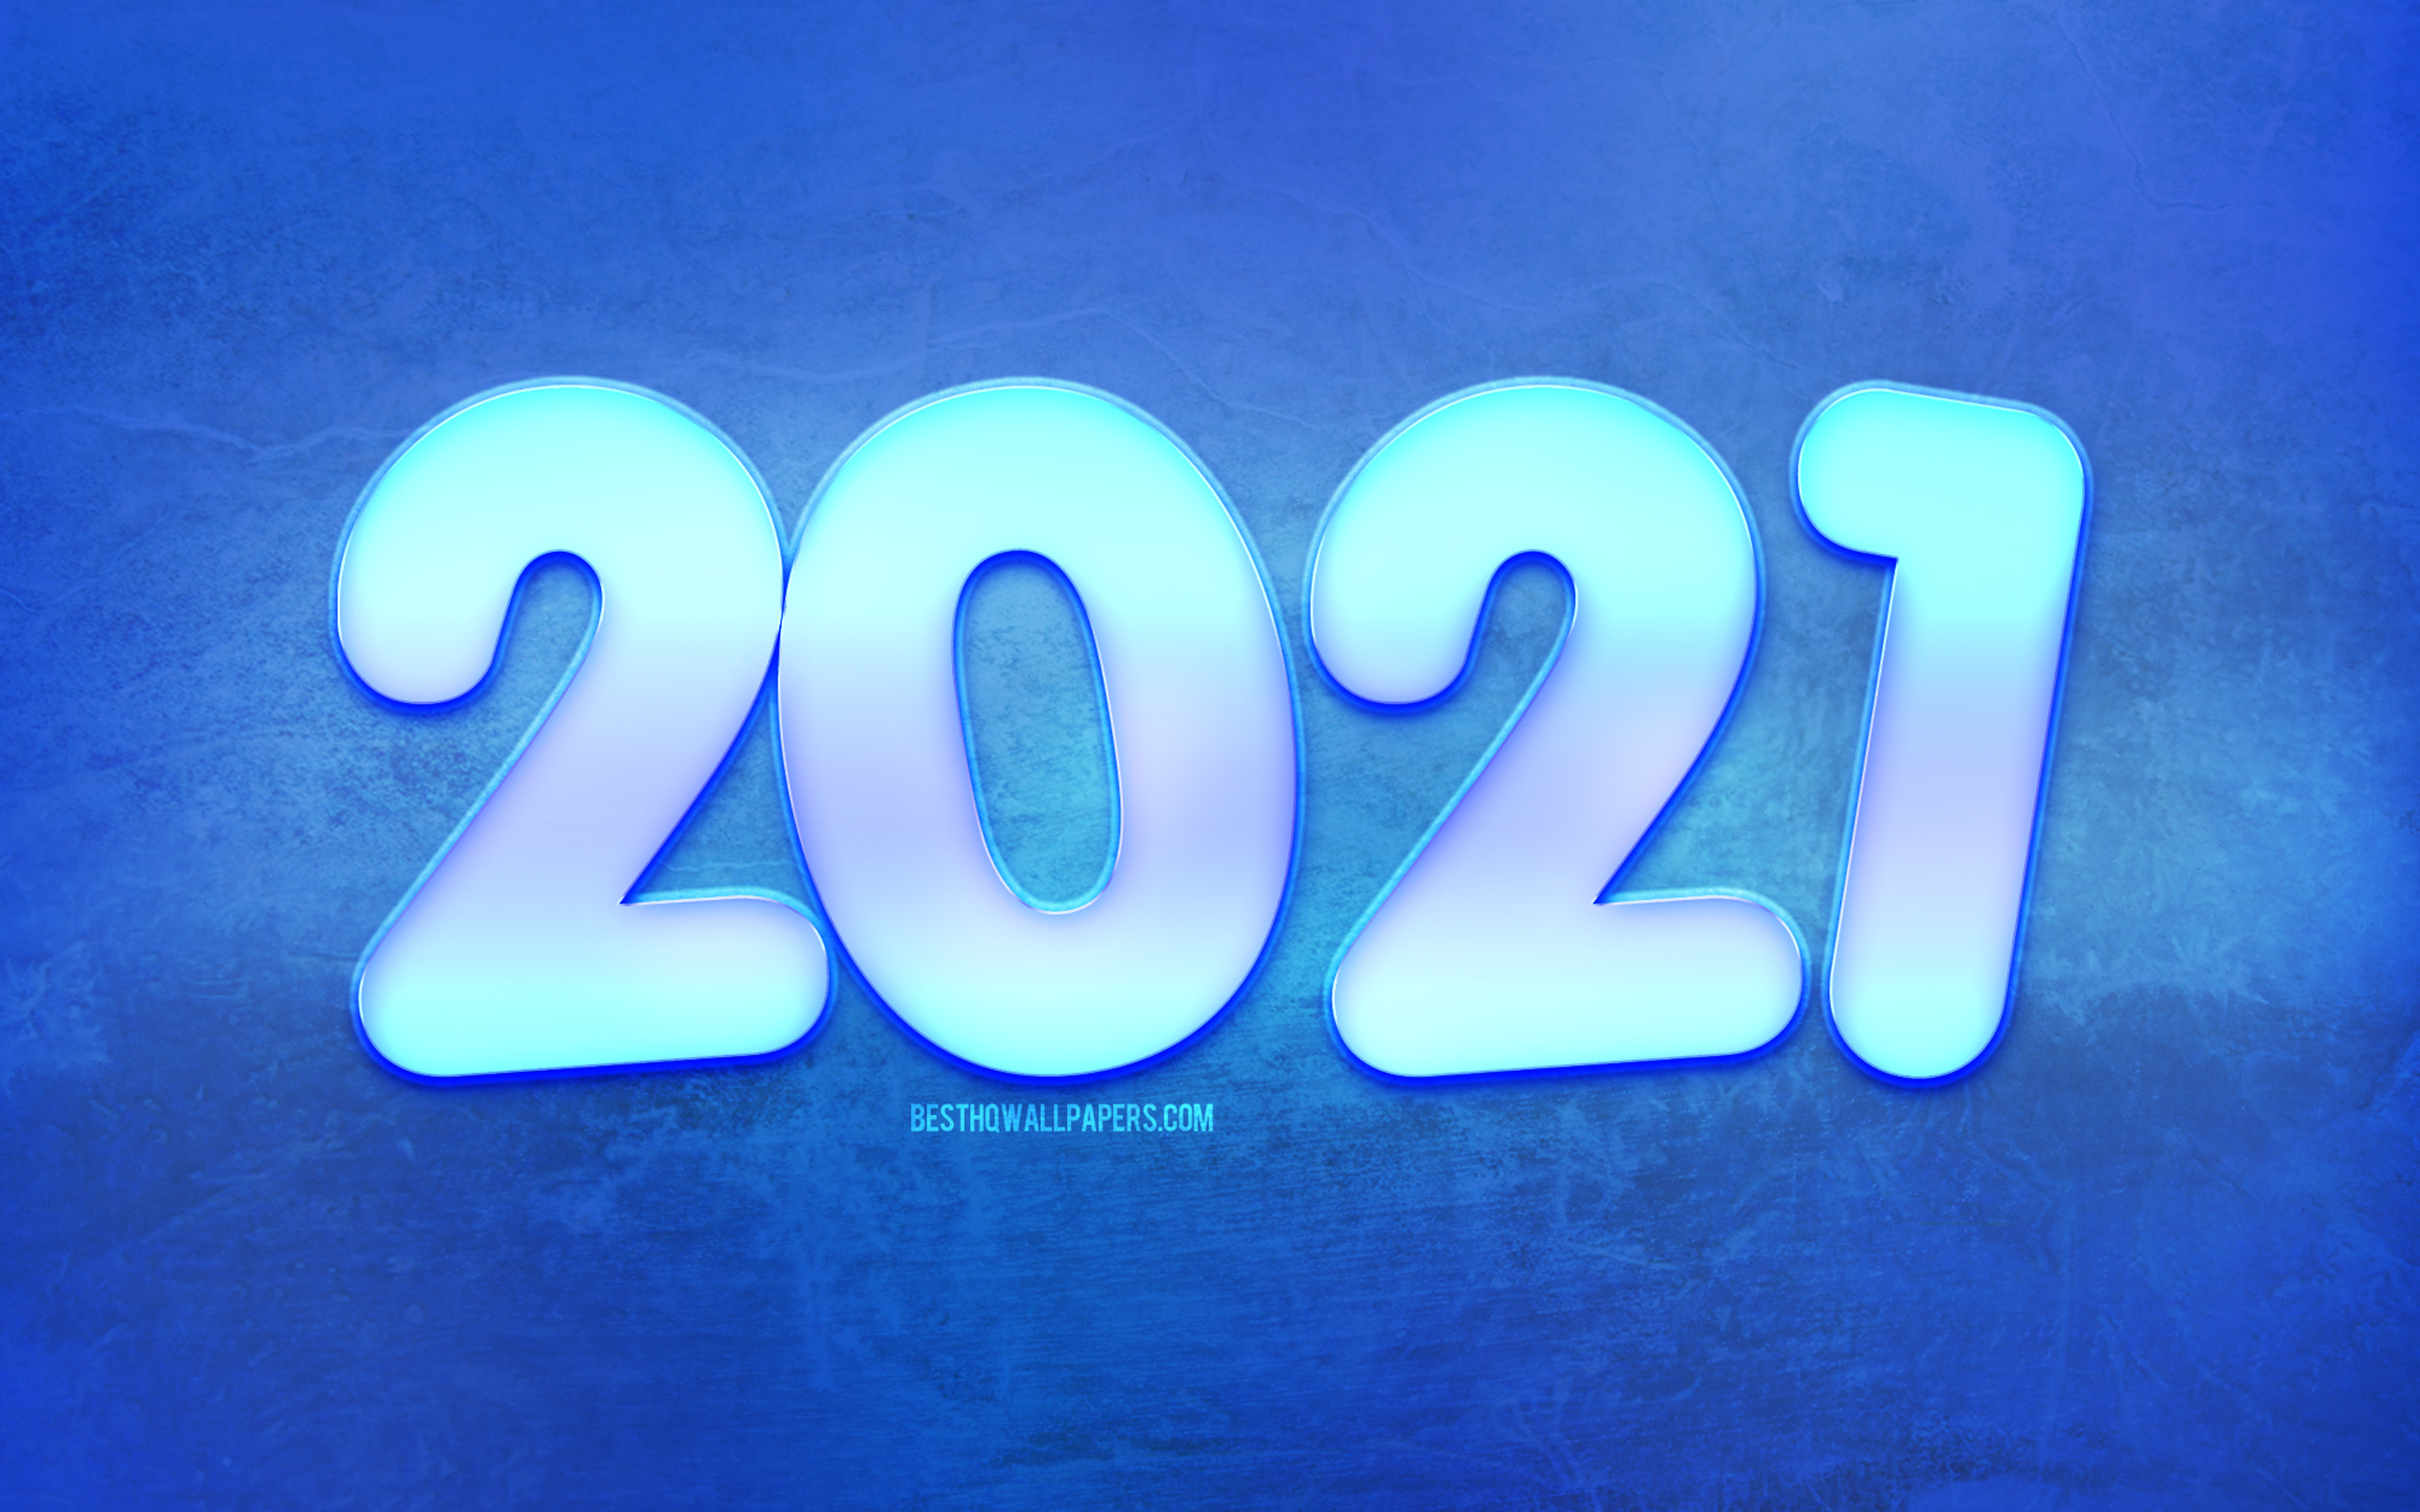 Download wallpapers 2021 New Year Winter blue background 2021 2880x1800